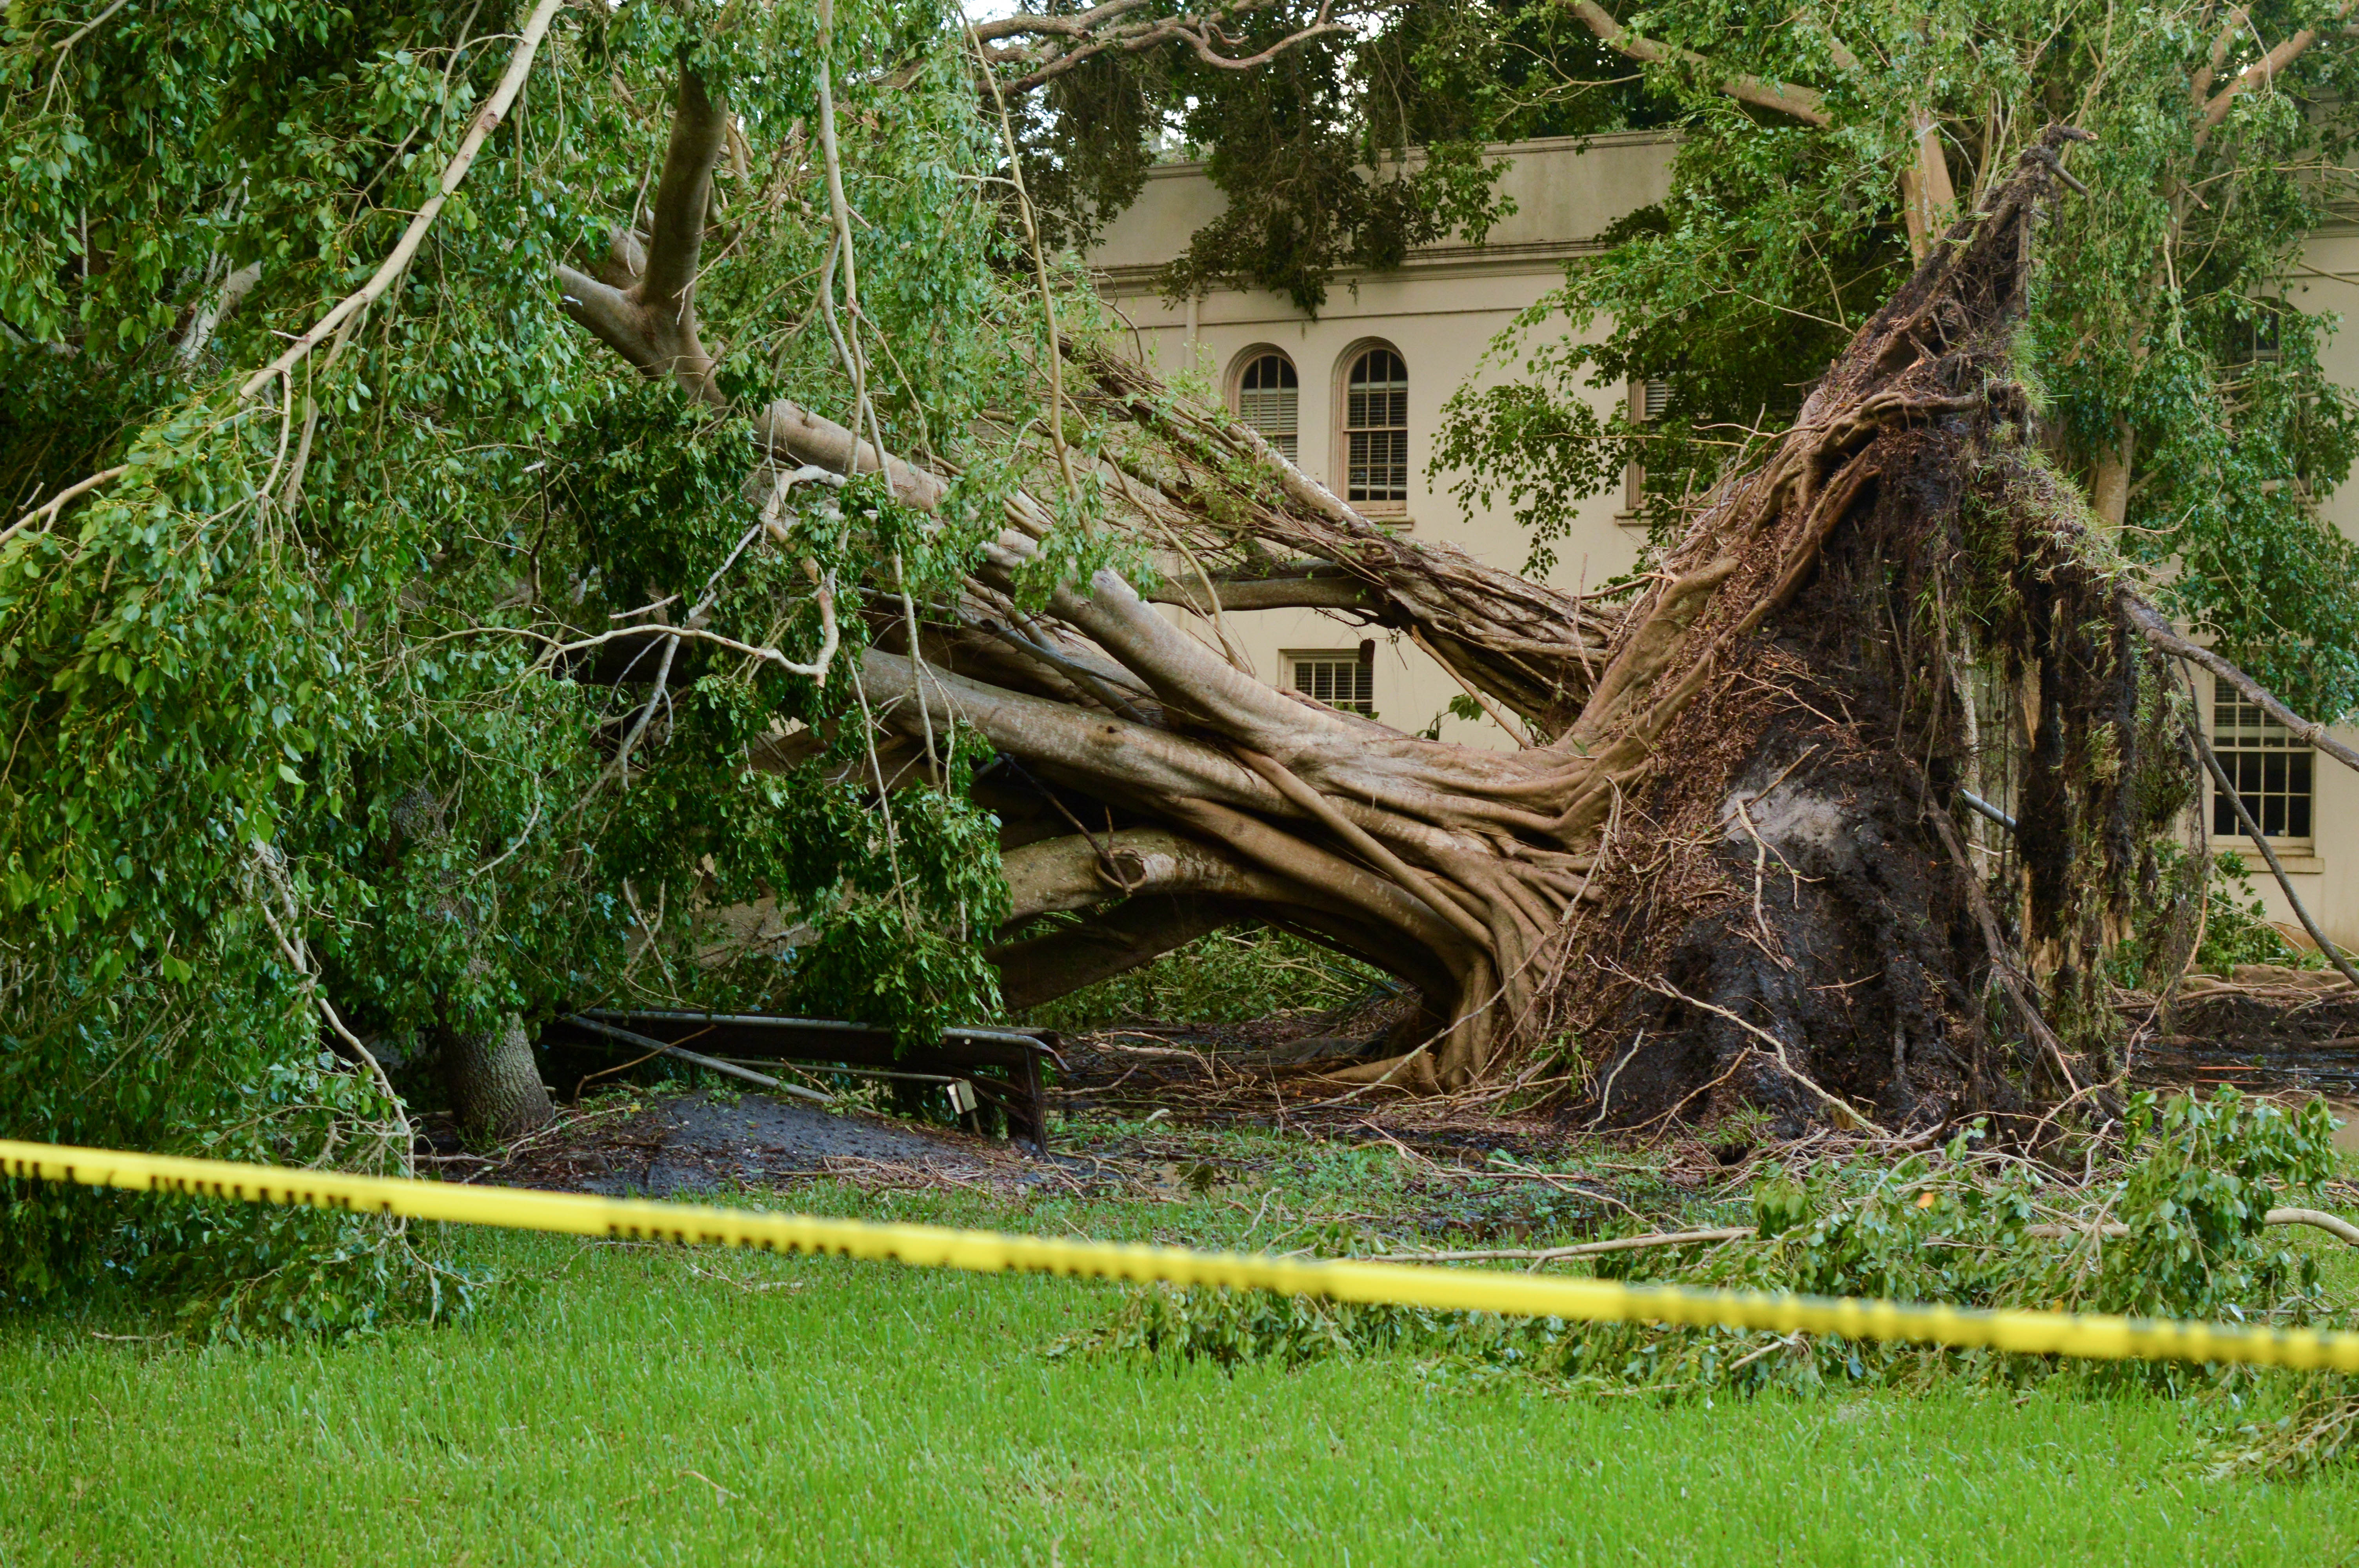 Missing in action: understanding tree removal on campus